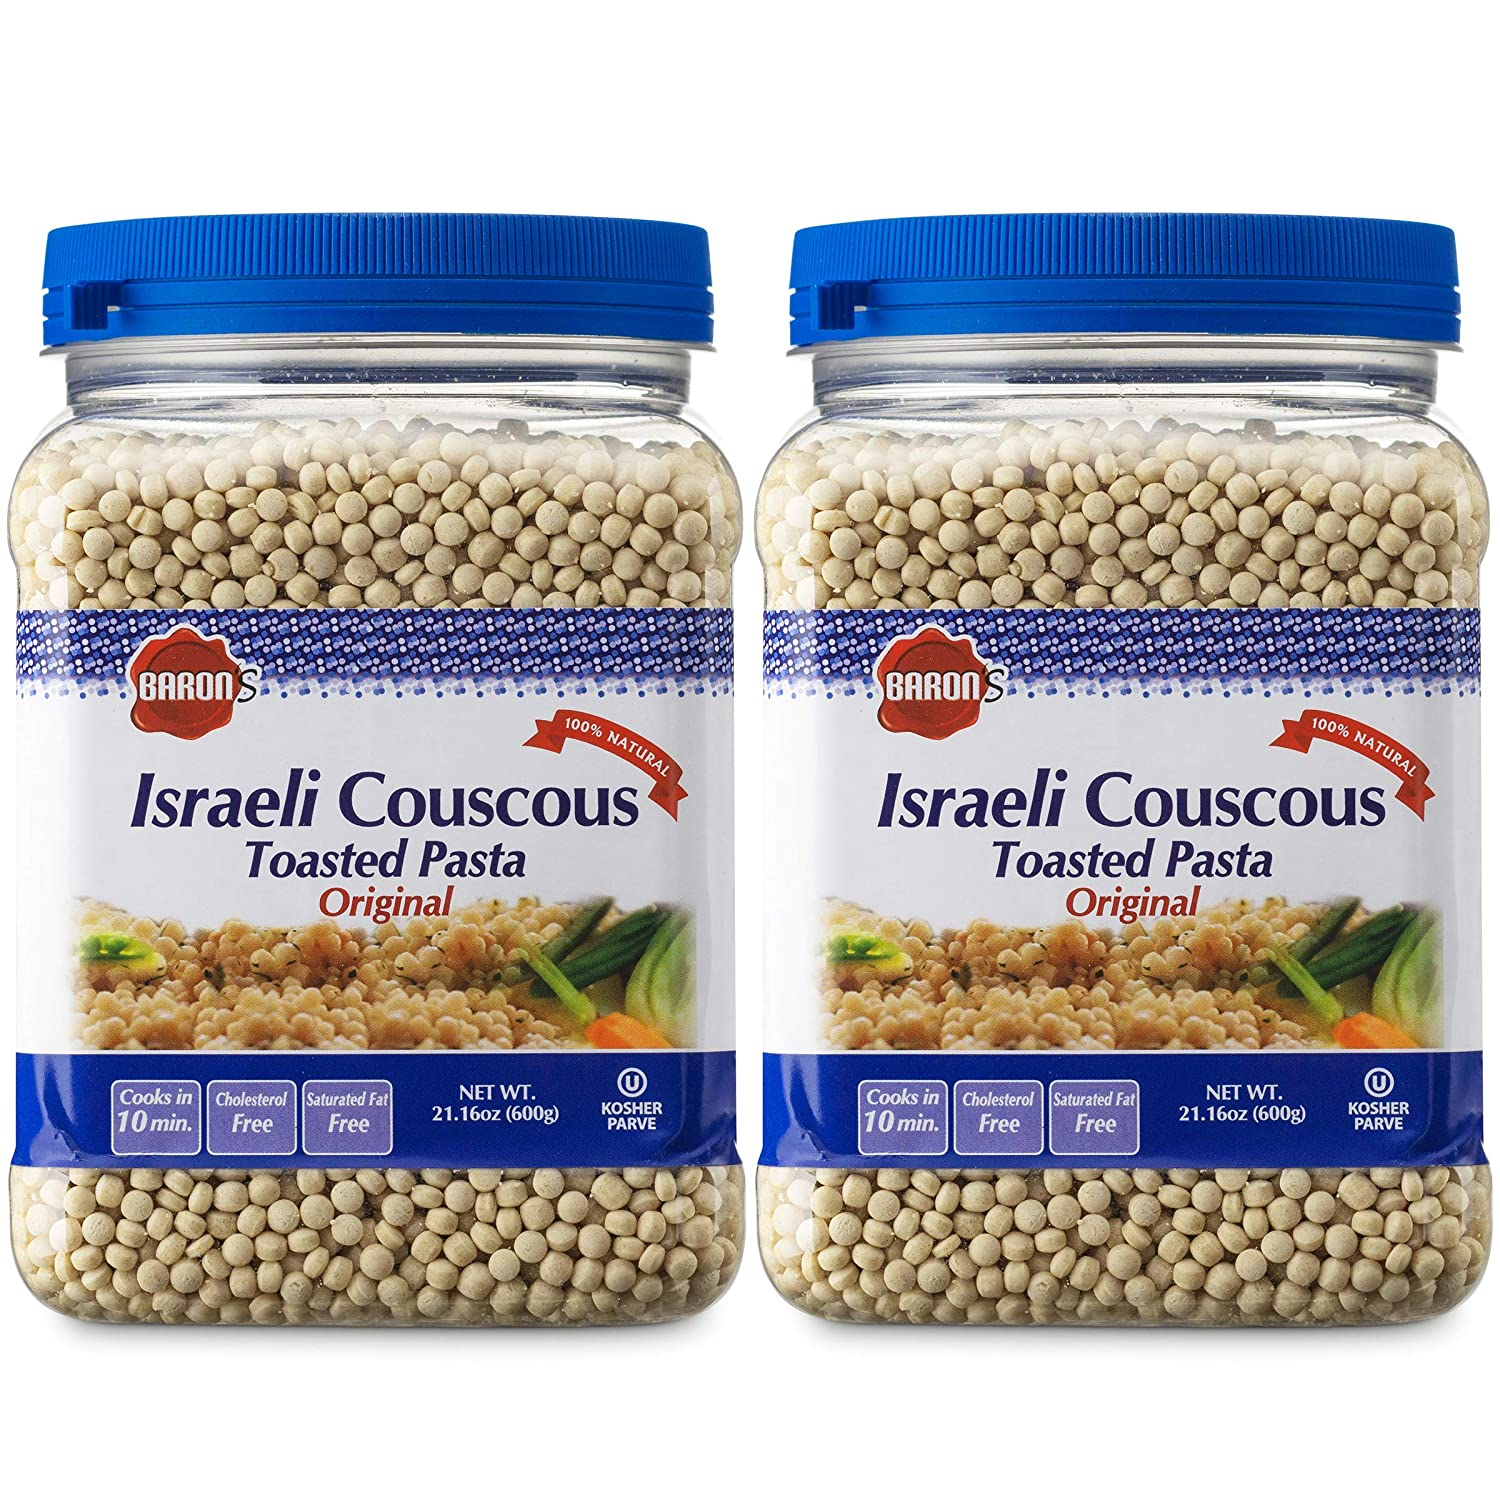 Amazon Com Baron S Original Israeli Couscous Toasted Pasta 100 Natural Pearled Noodles For Salads Soups Side Dishes Cooks In 10 Minutes Kosher 2 Pack 21 16oz Jars Dried Couscous Grocery Gourmet Food